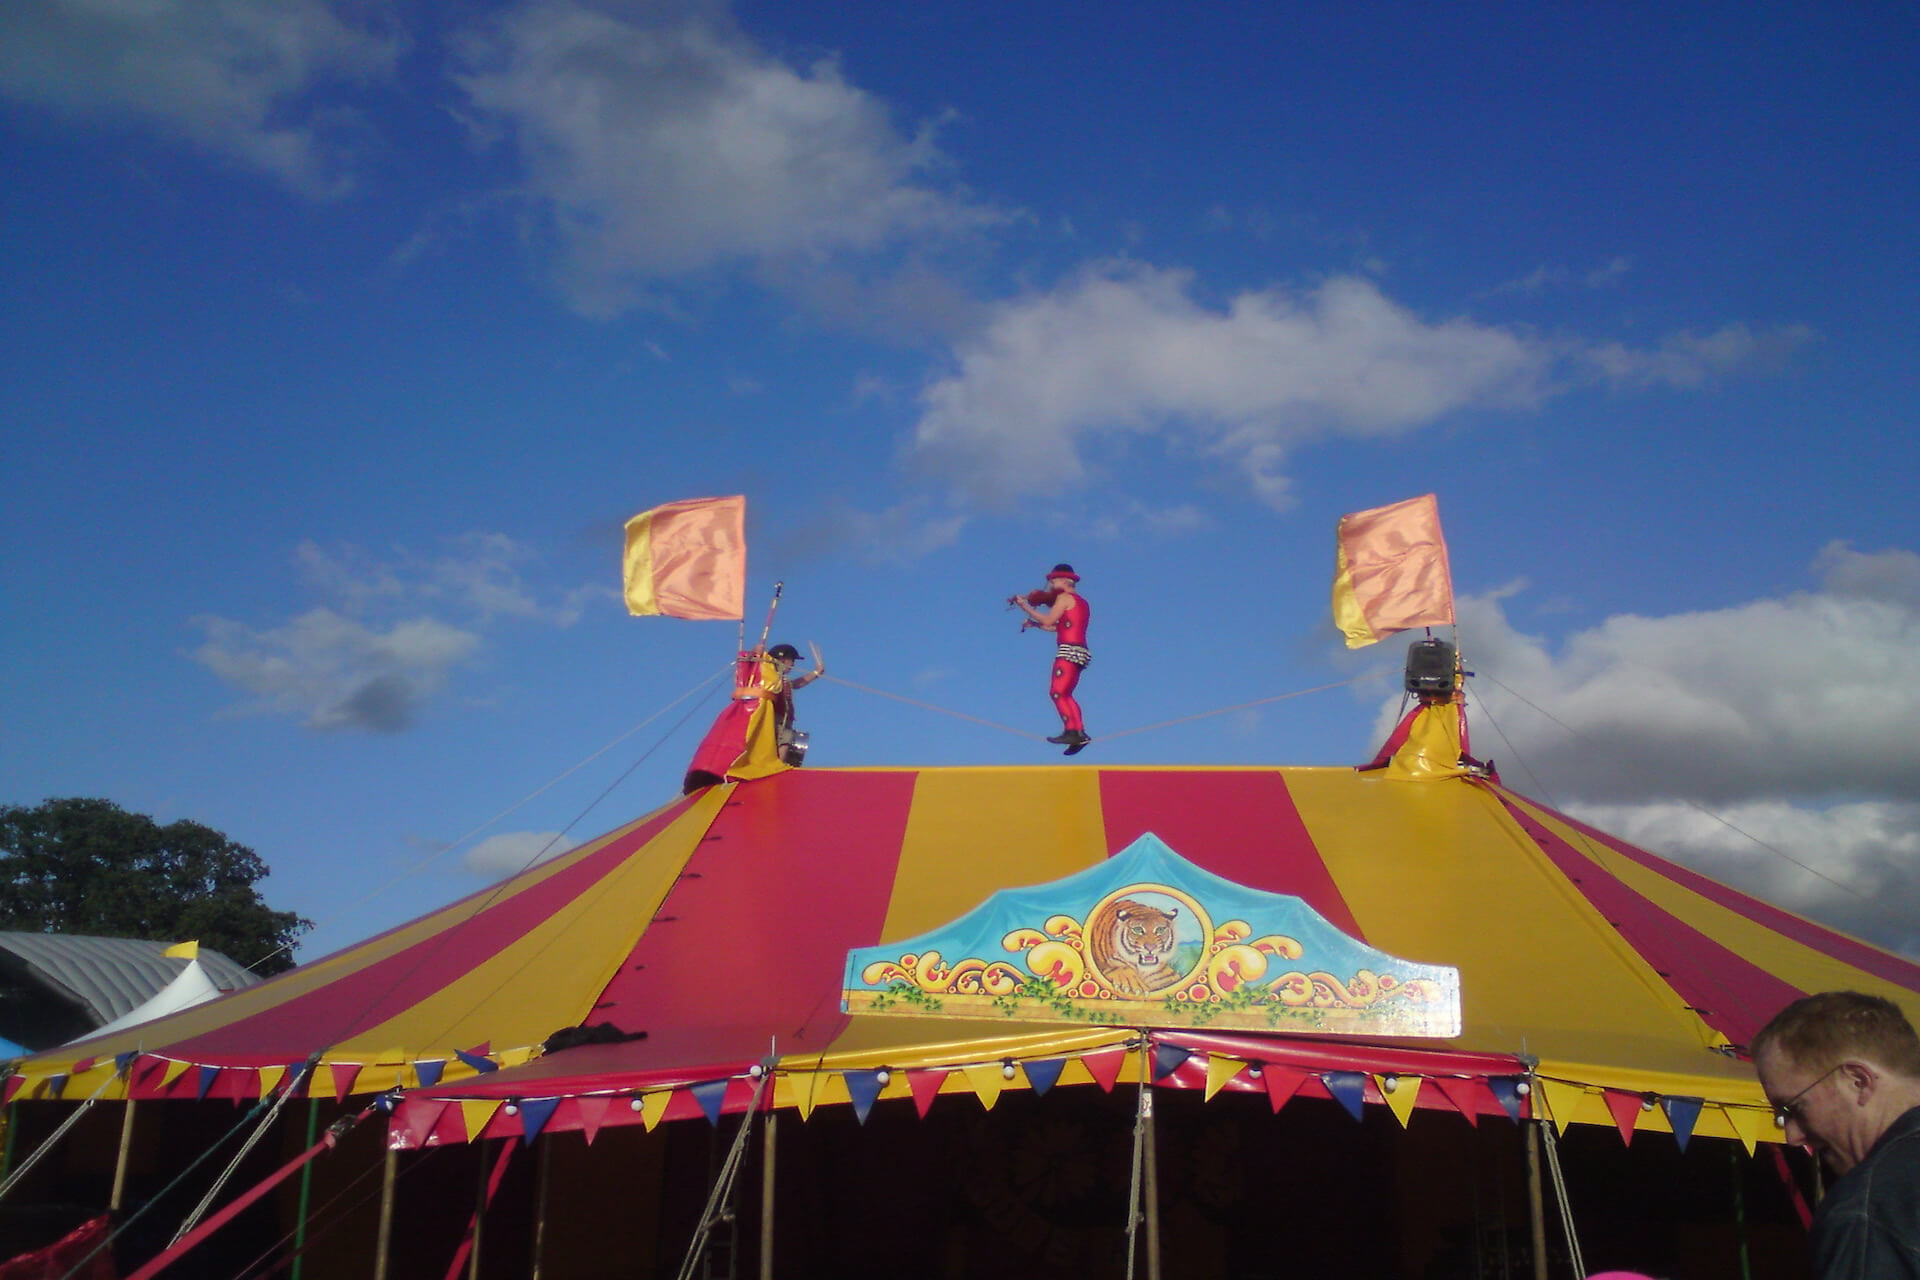 Kwabana Lindsay on the top of circus tent at Guilfest